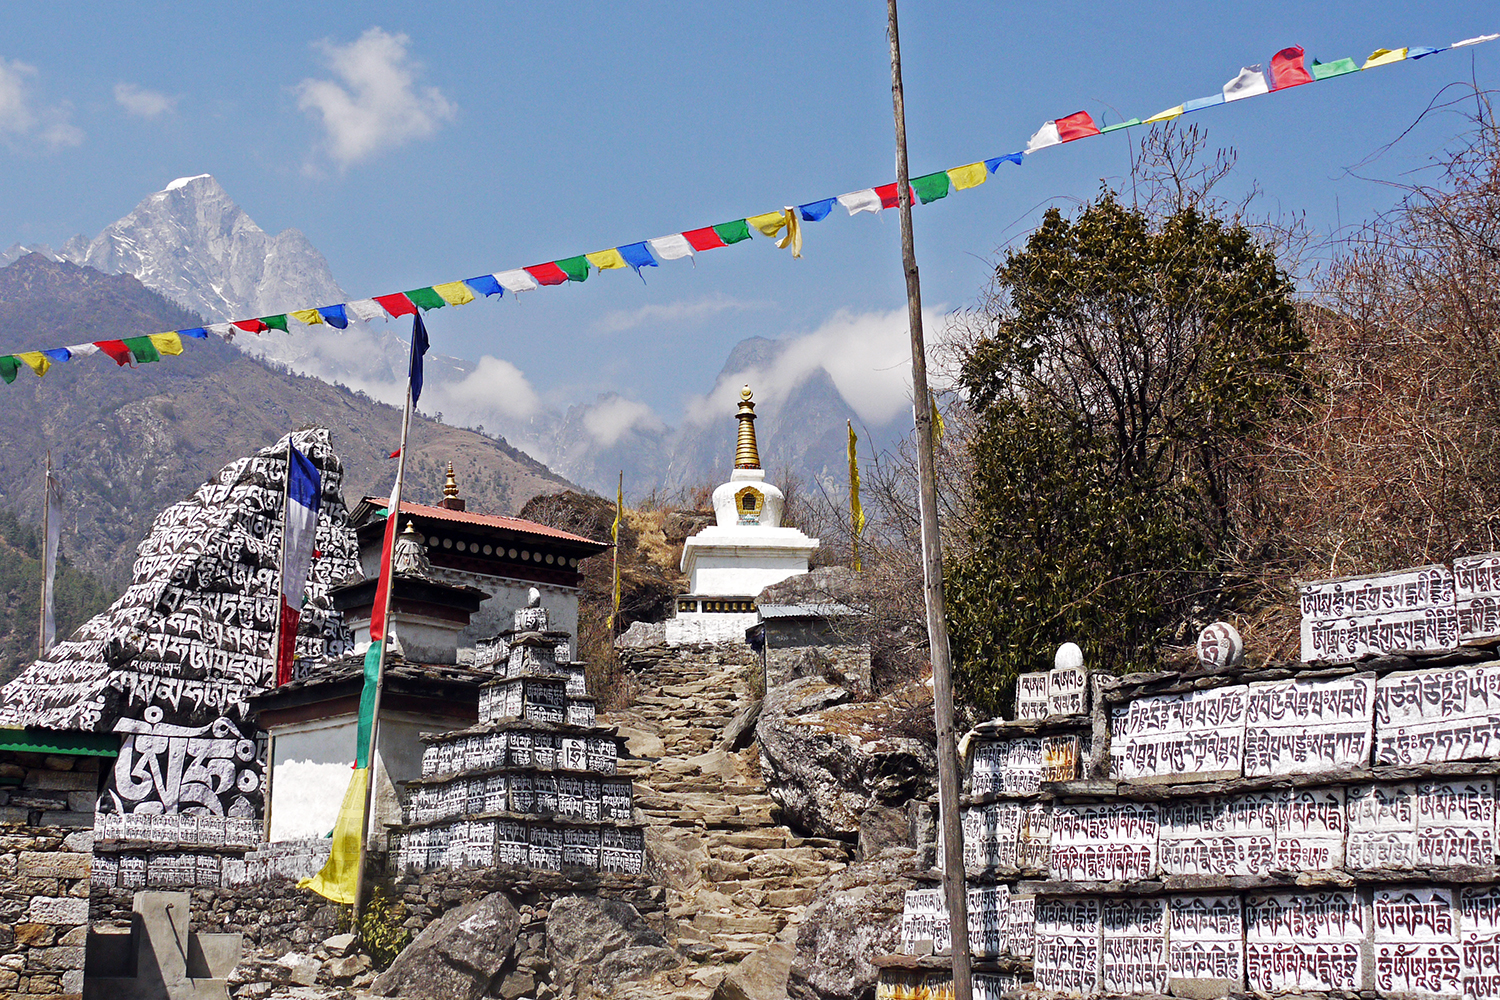 Buddhist Mantras painted on stones with prayer flags flying overhead